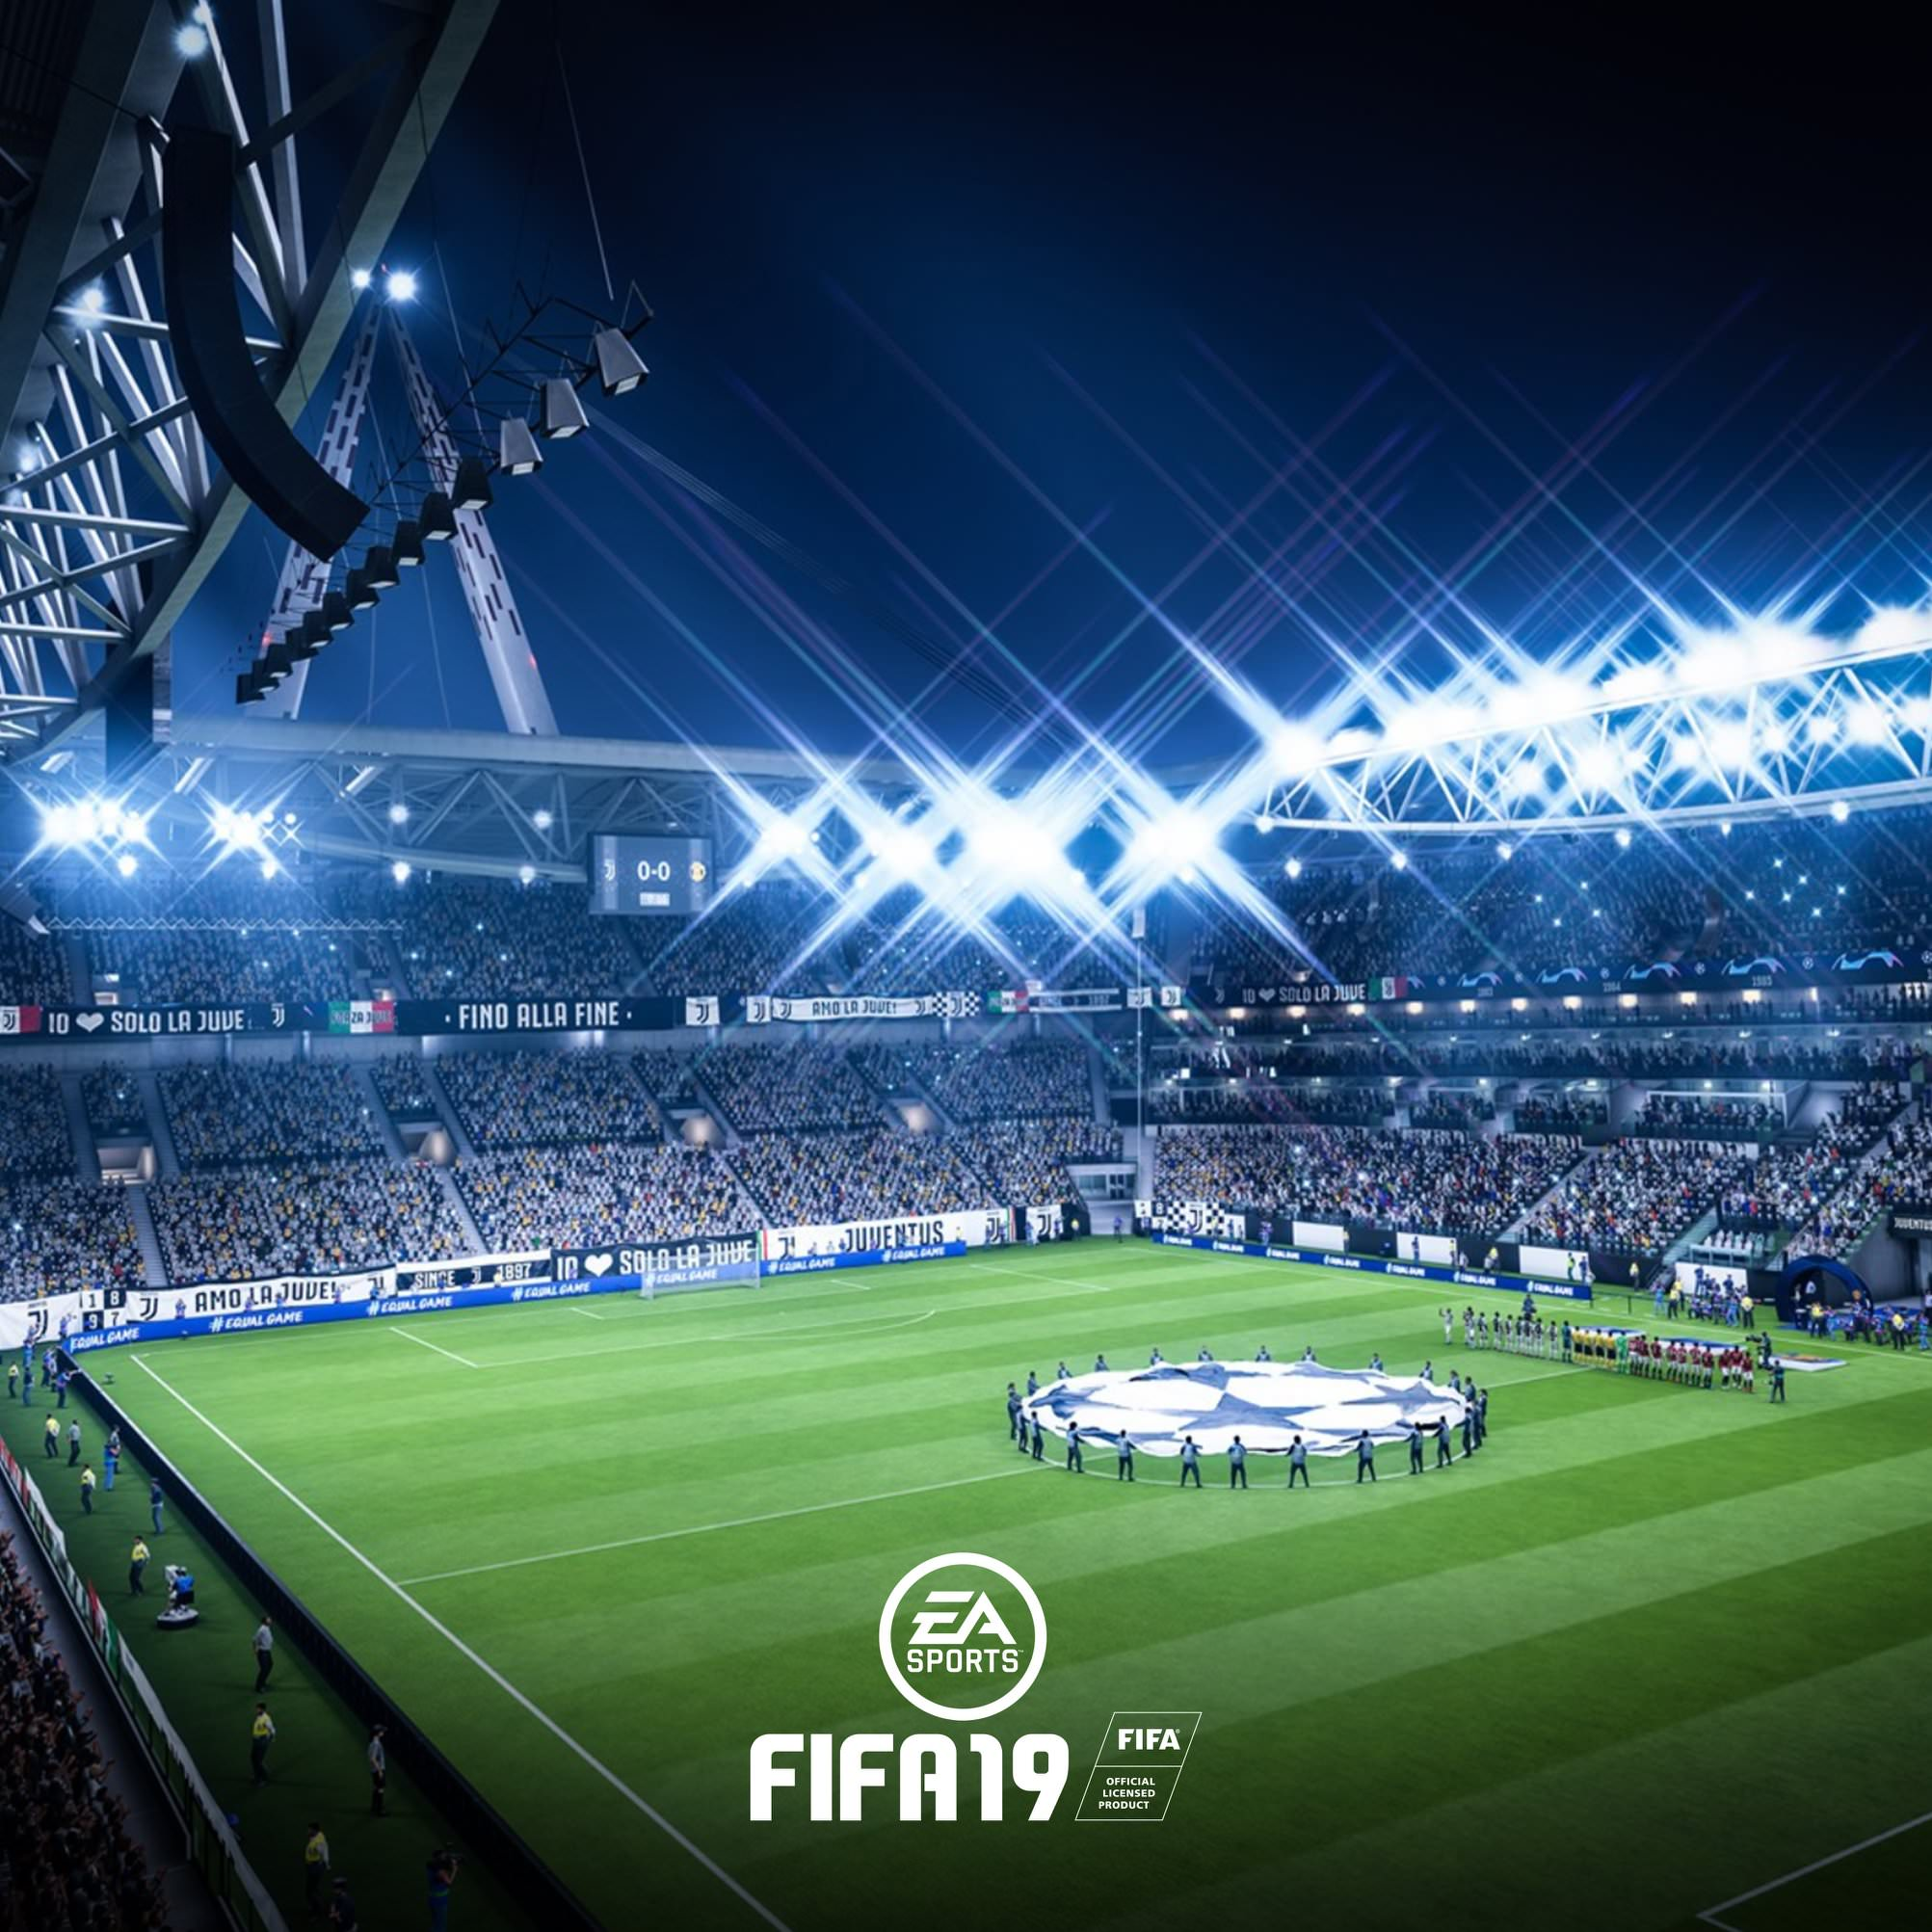 Download FIFA 19 Champions League Wallpaper For Tablet